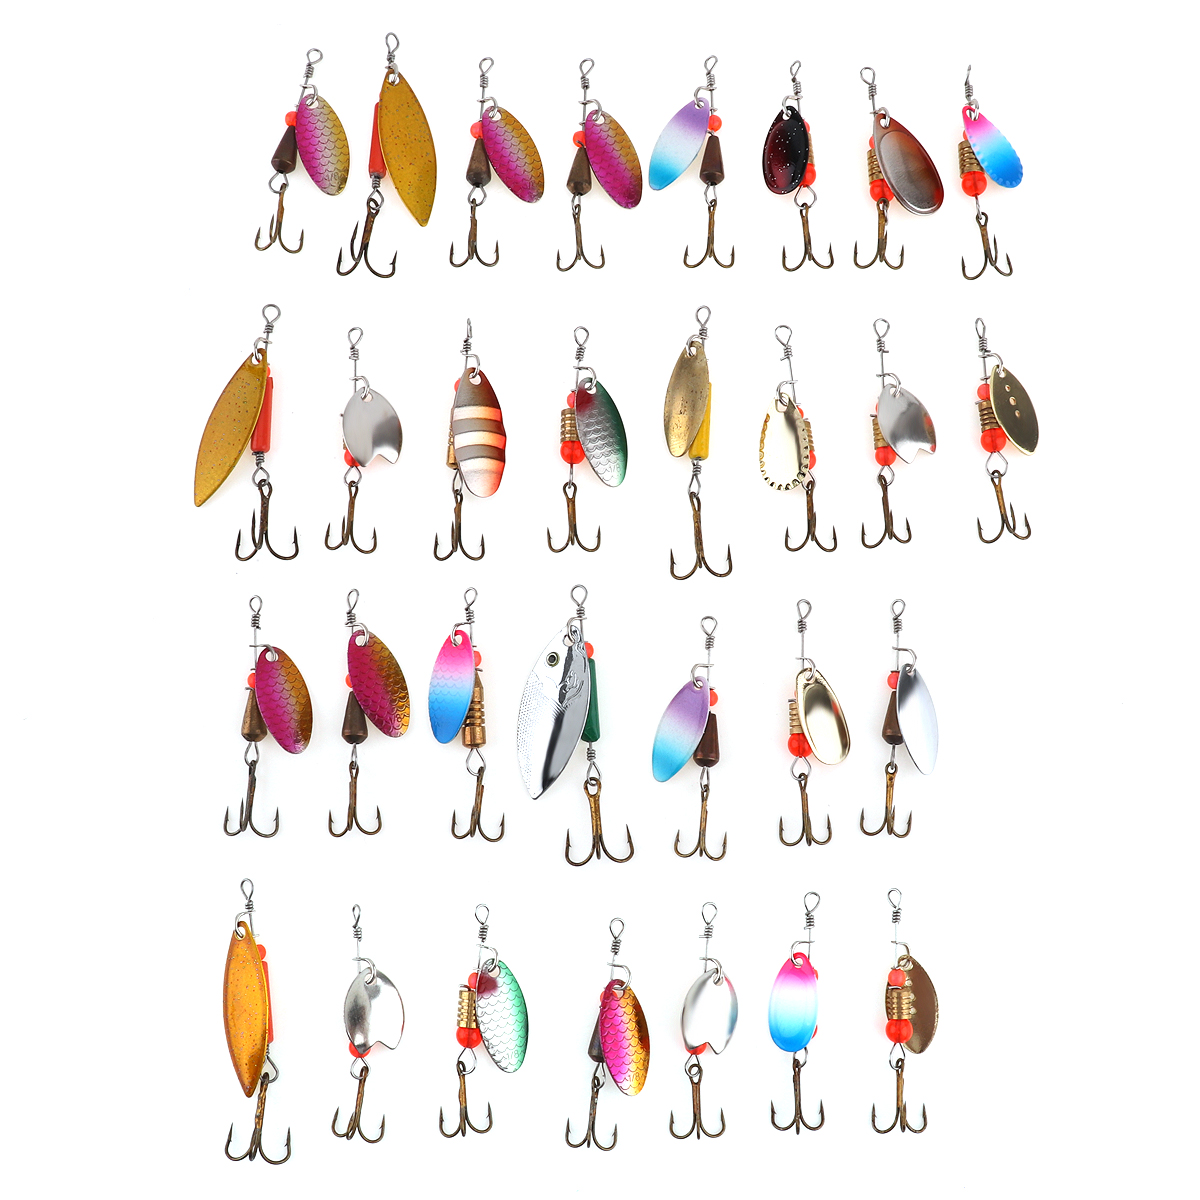 31pcs Assorted Metal Fishing Lures Kit Spinner Spoon Baits Crankbait with Treble Hooks and Plastic Box mymei 9 compartments plastic fishing lures spoon hooks baits hook tackle storage box